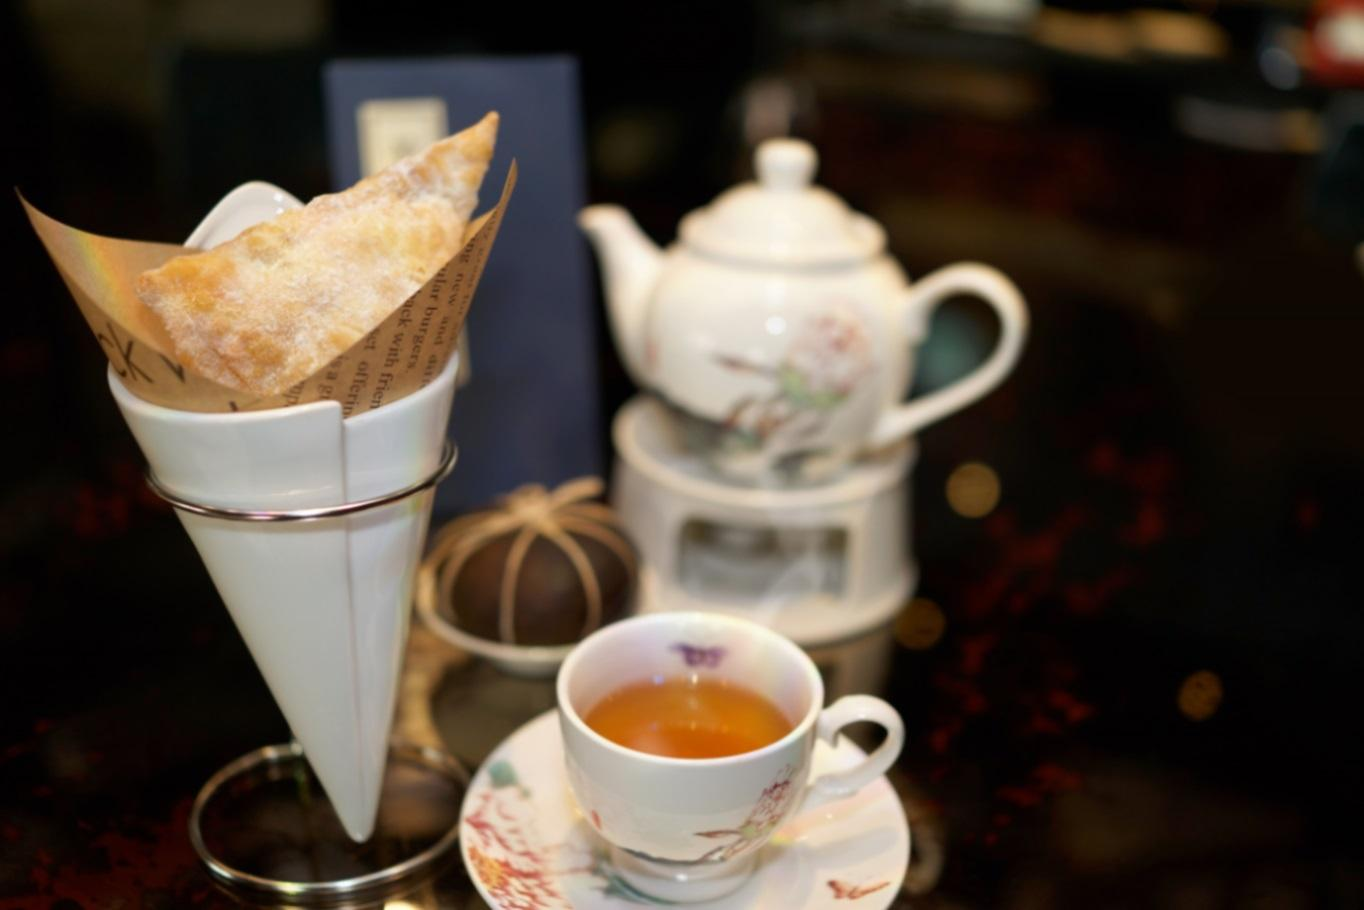 Deep-Fried Cheese Pastry is paired with a Hakka specialty of Citrus Green Tea (Photo: Le Palais)